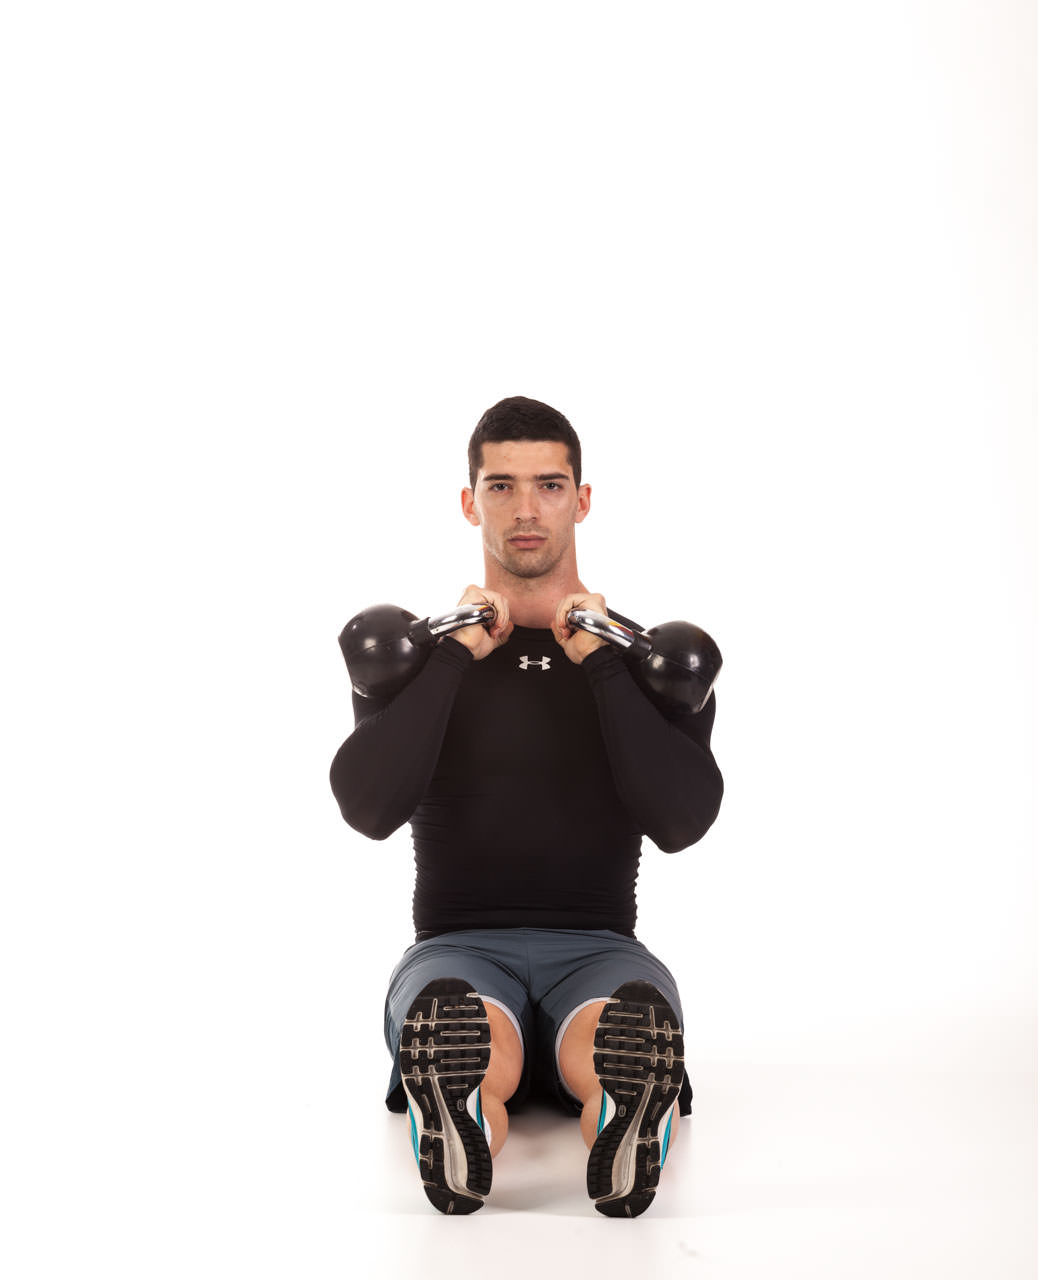 Kettlebell Seated Press frame #1